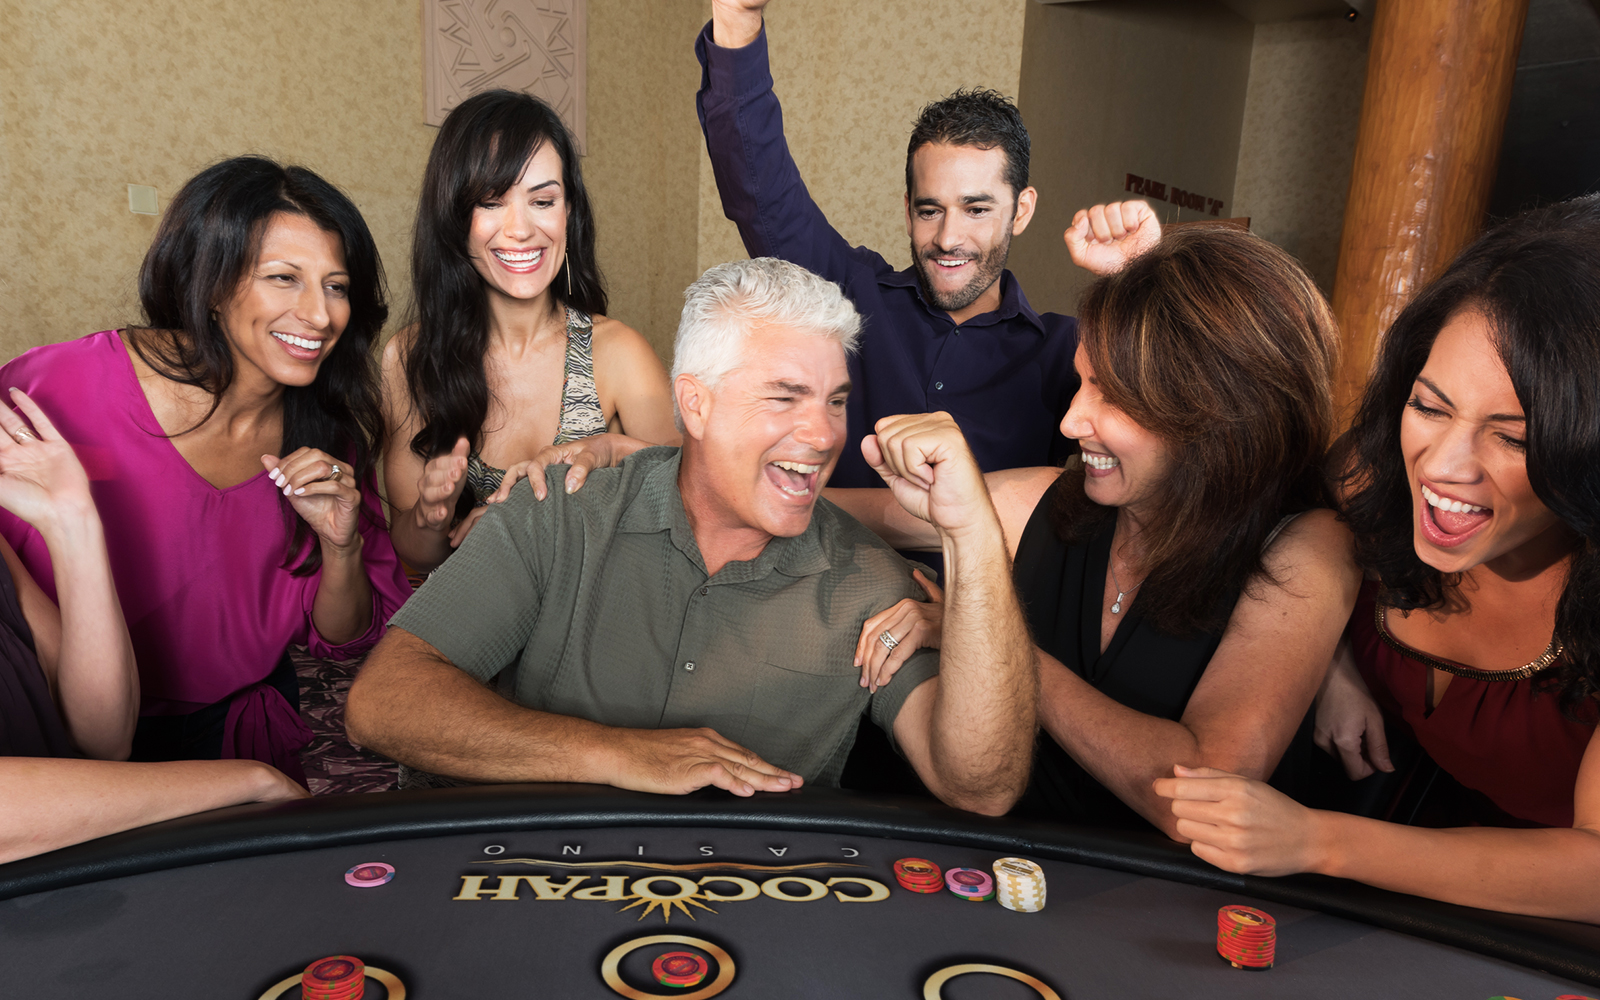 Cano v cocopah casino online casinos that accept amex gift cards